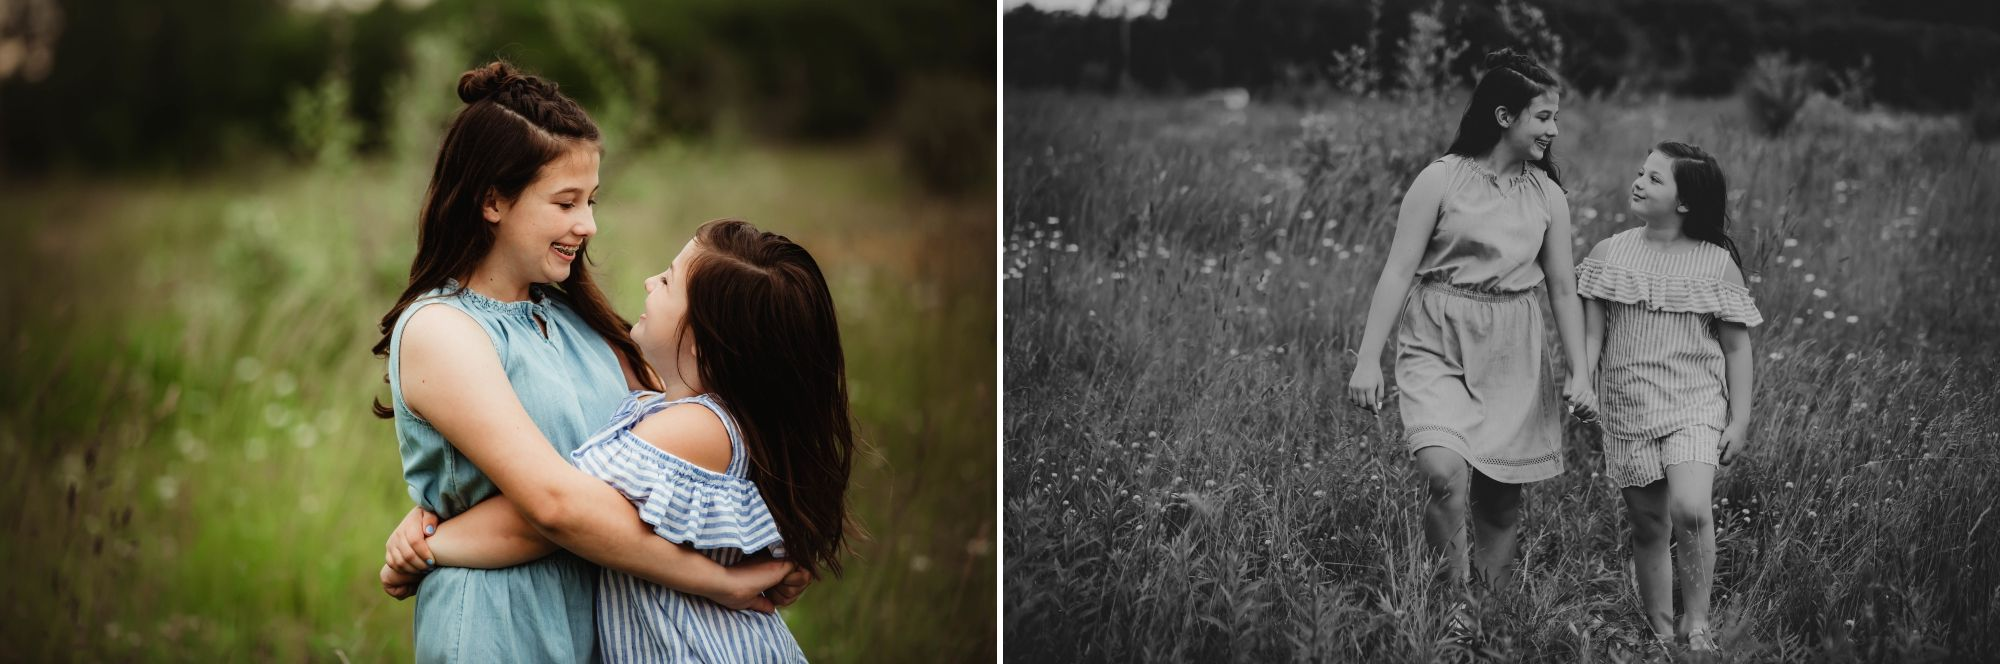 Photos of two brunette sisters hugging, smiling, and holding hands in a field.